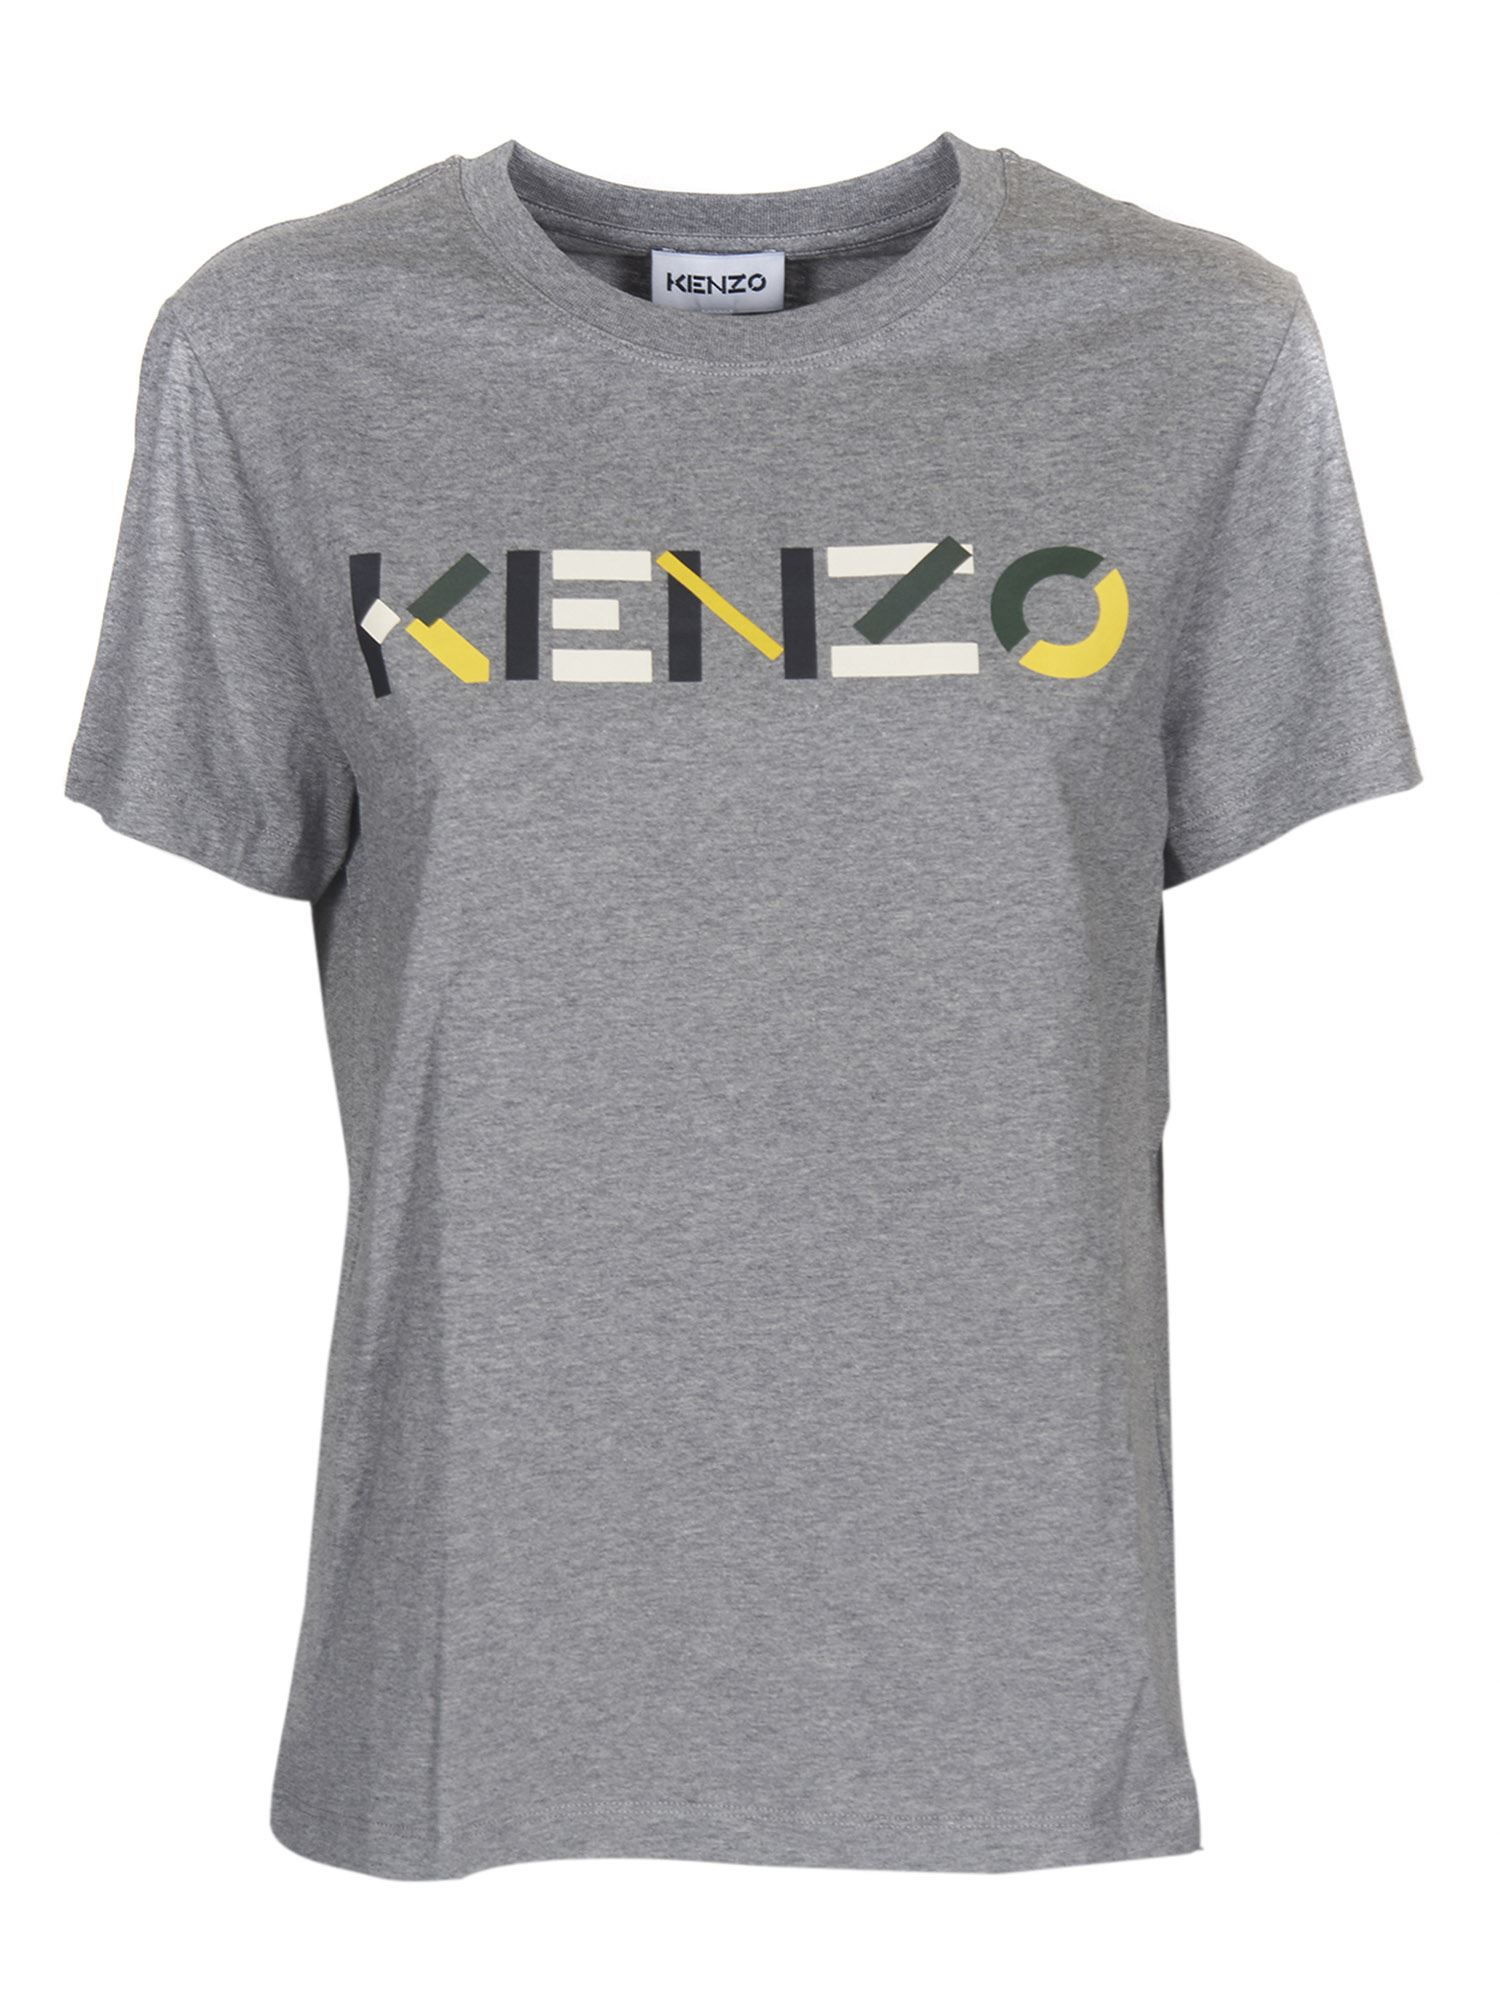 Kenzo MULTICOLOR LOGO T-SHIRT IN GRAY